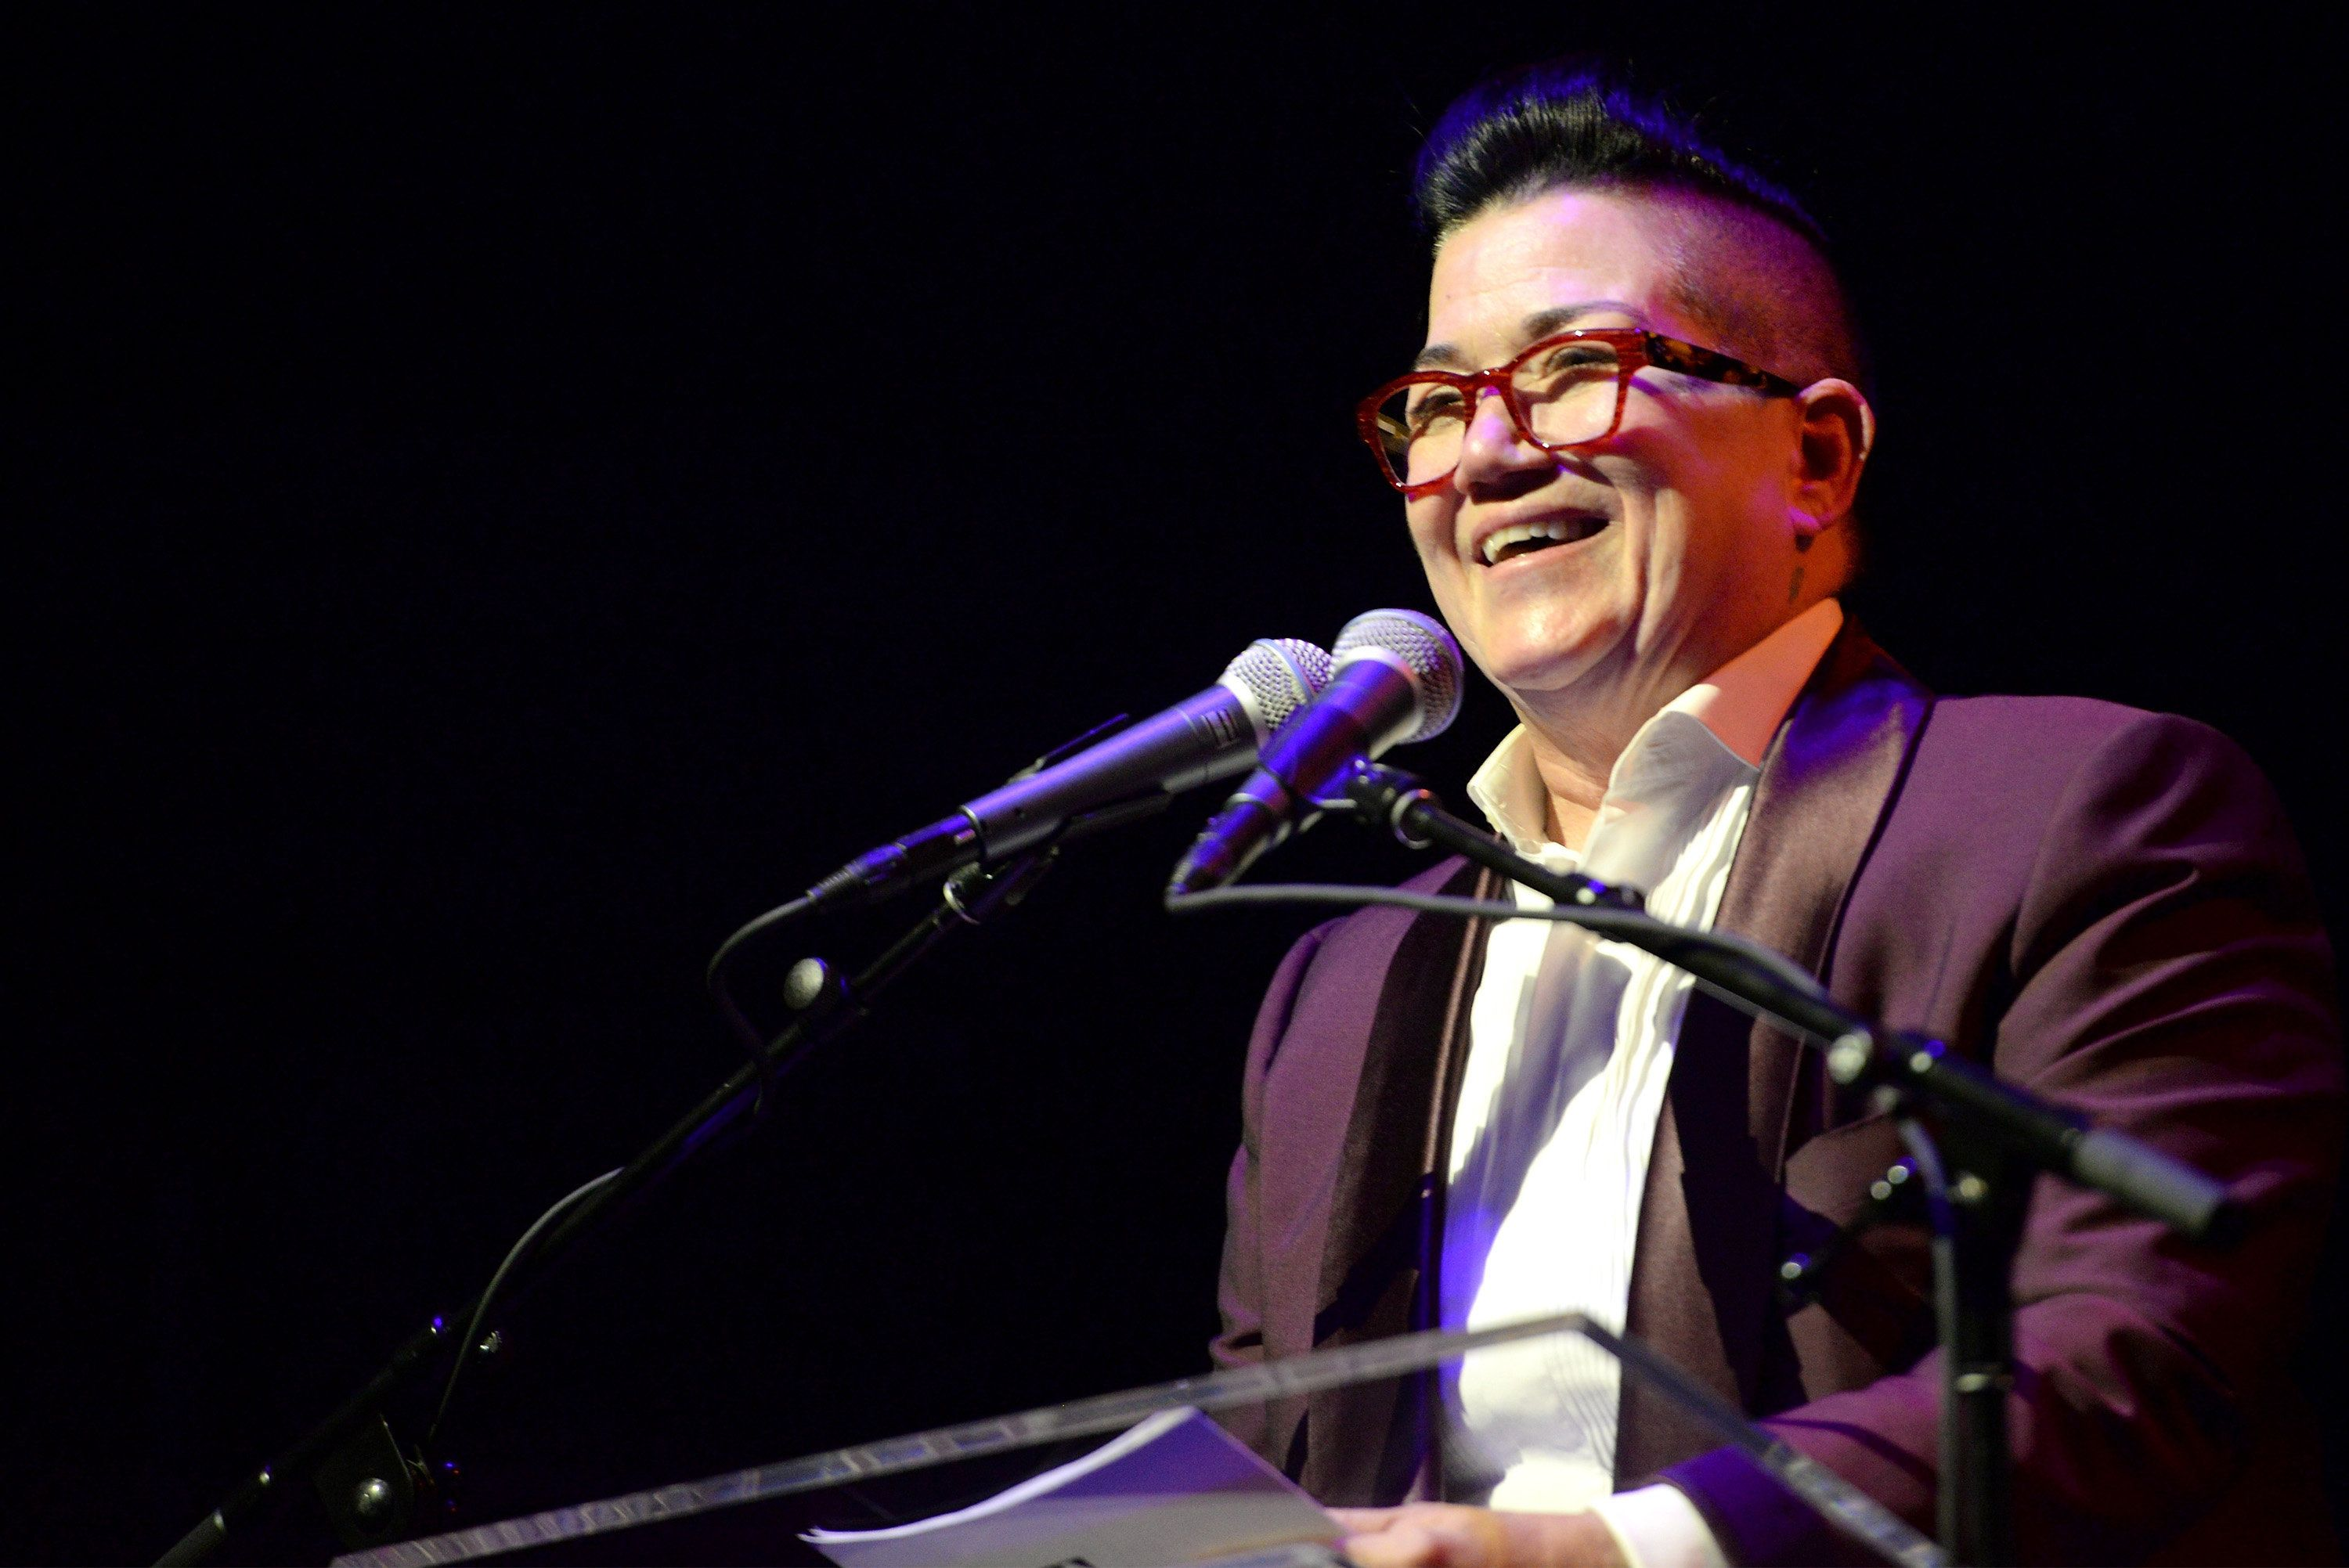 NEW YORK, NY - MAY 23: Actress Lea DeLaria speaks onstage at the 61st Annual Obie Awards at Webster Hall on May 23, 2016 in New York City.  (Photo by Mike Pont/Getty Images for American Theater Wing)